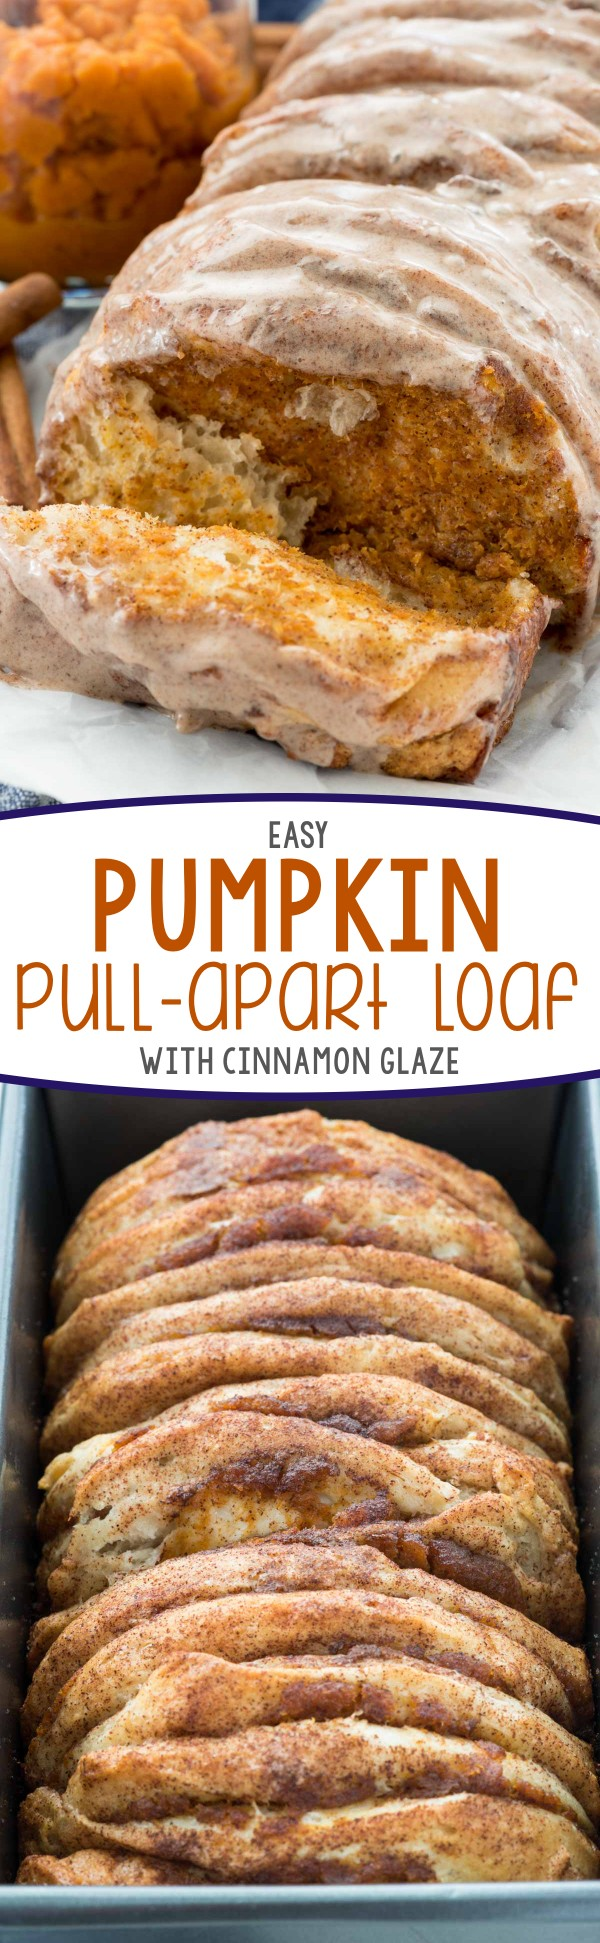 Get the recipe Pumpkin Pull-Apart Loaf @recipes_to_go